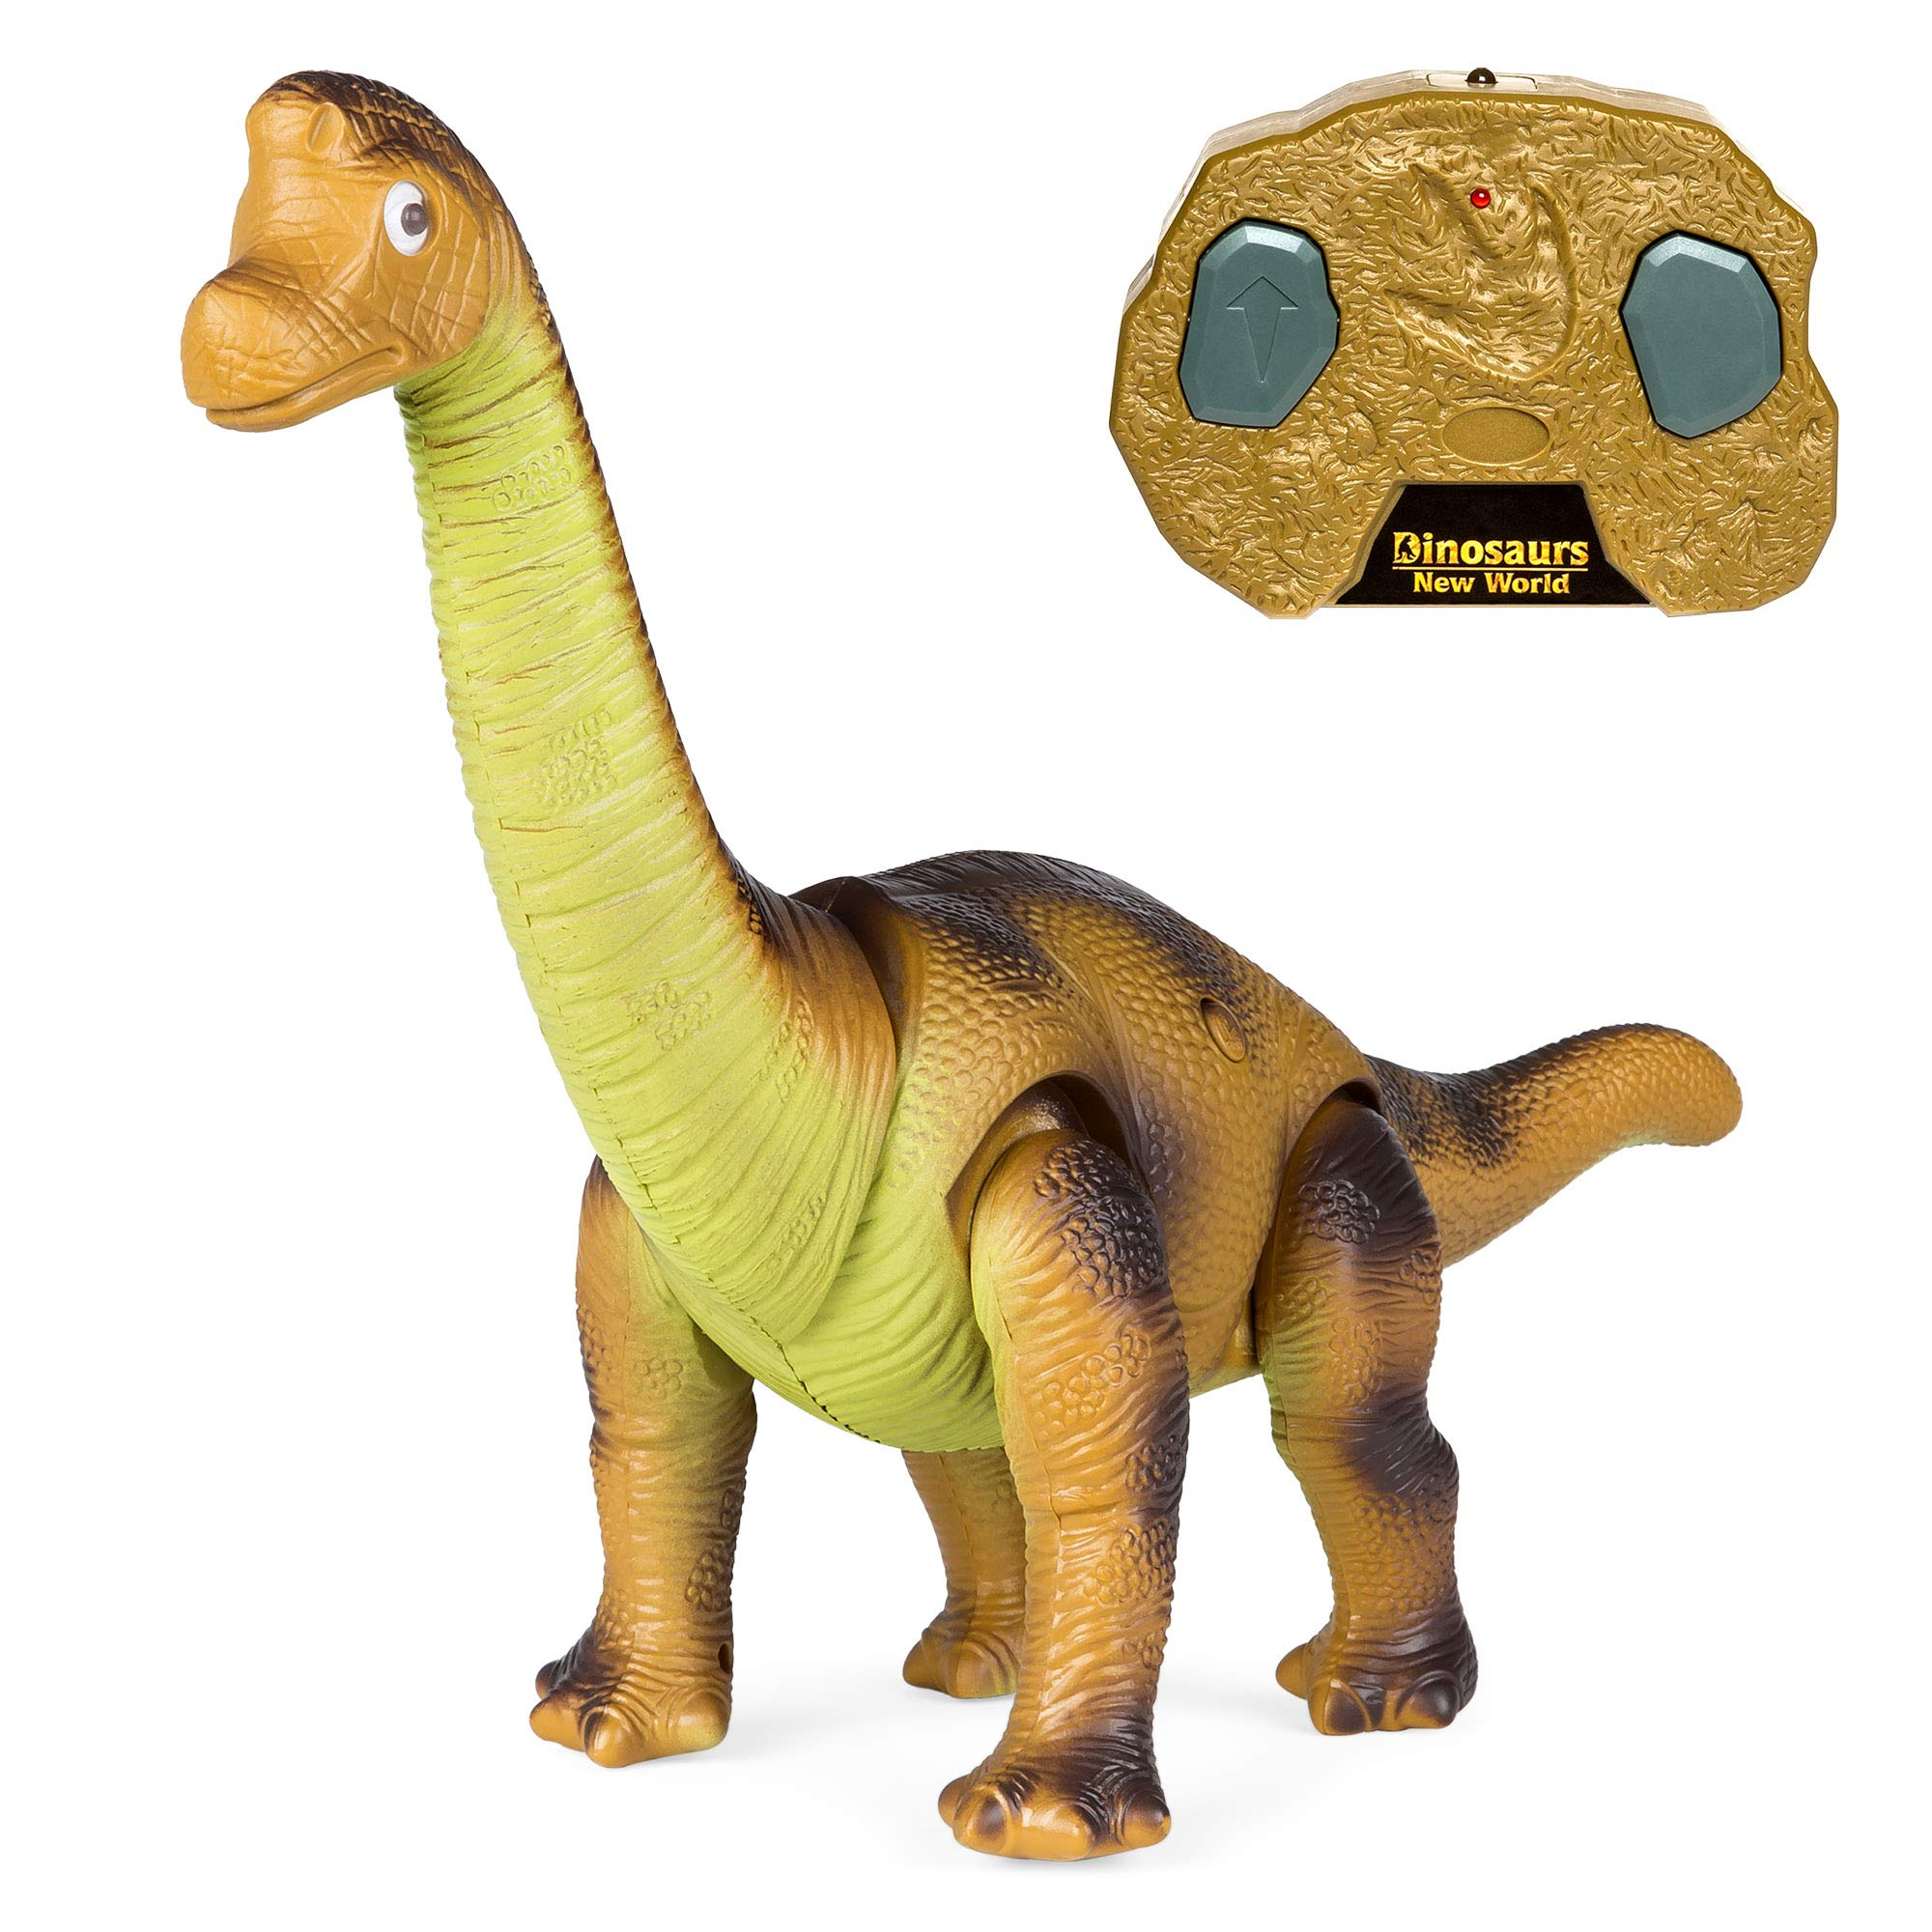 Best Choice Products 17.5in Kids RC Stomping Brachiosaurus Dinosaur Electric Animal Toy Robot w/ Light Up Eyes, Roaring Sounds, Swinging Head, Remote Control by Best Choice Products (Image #7)